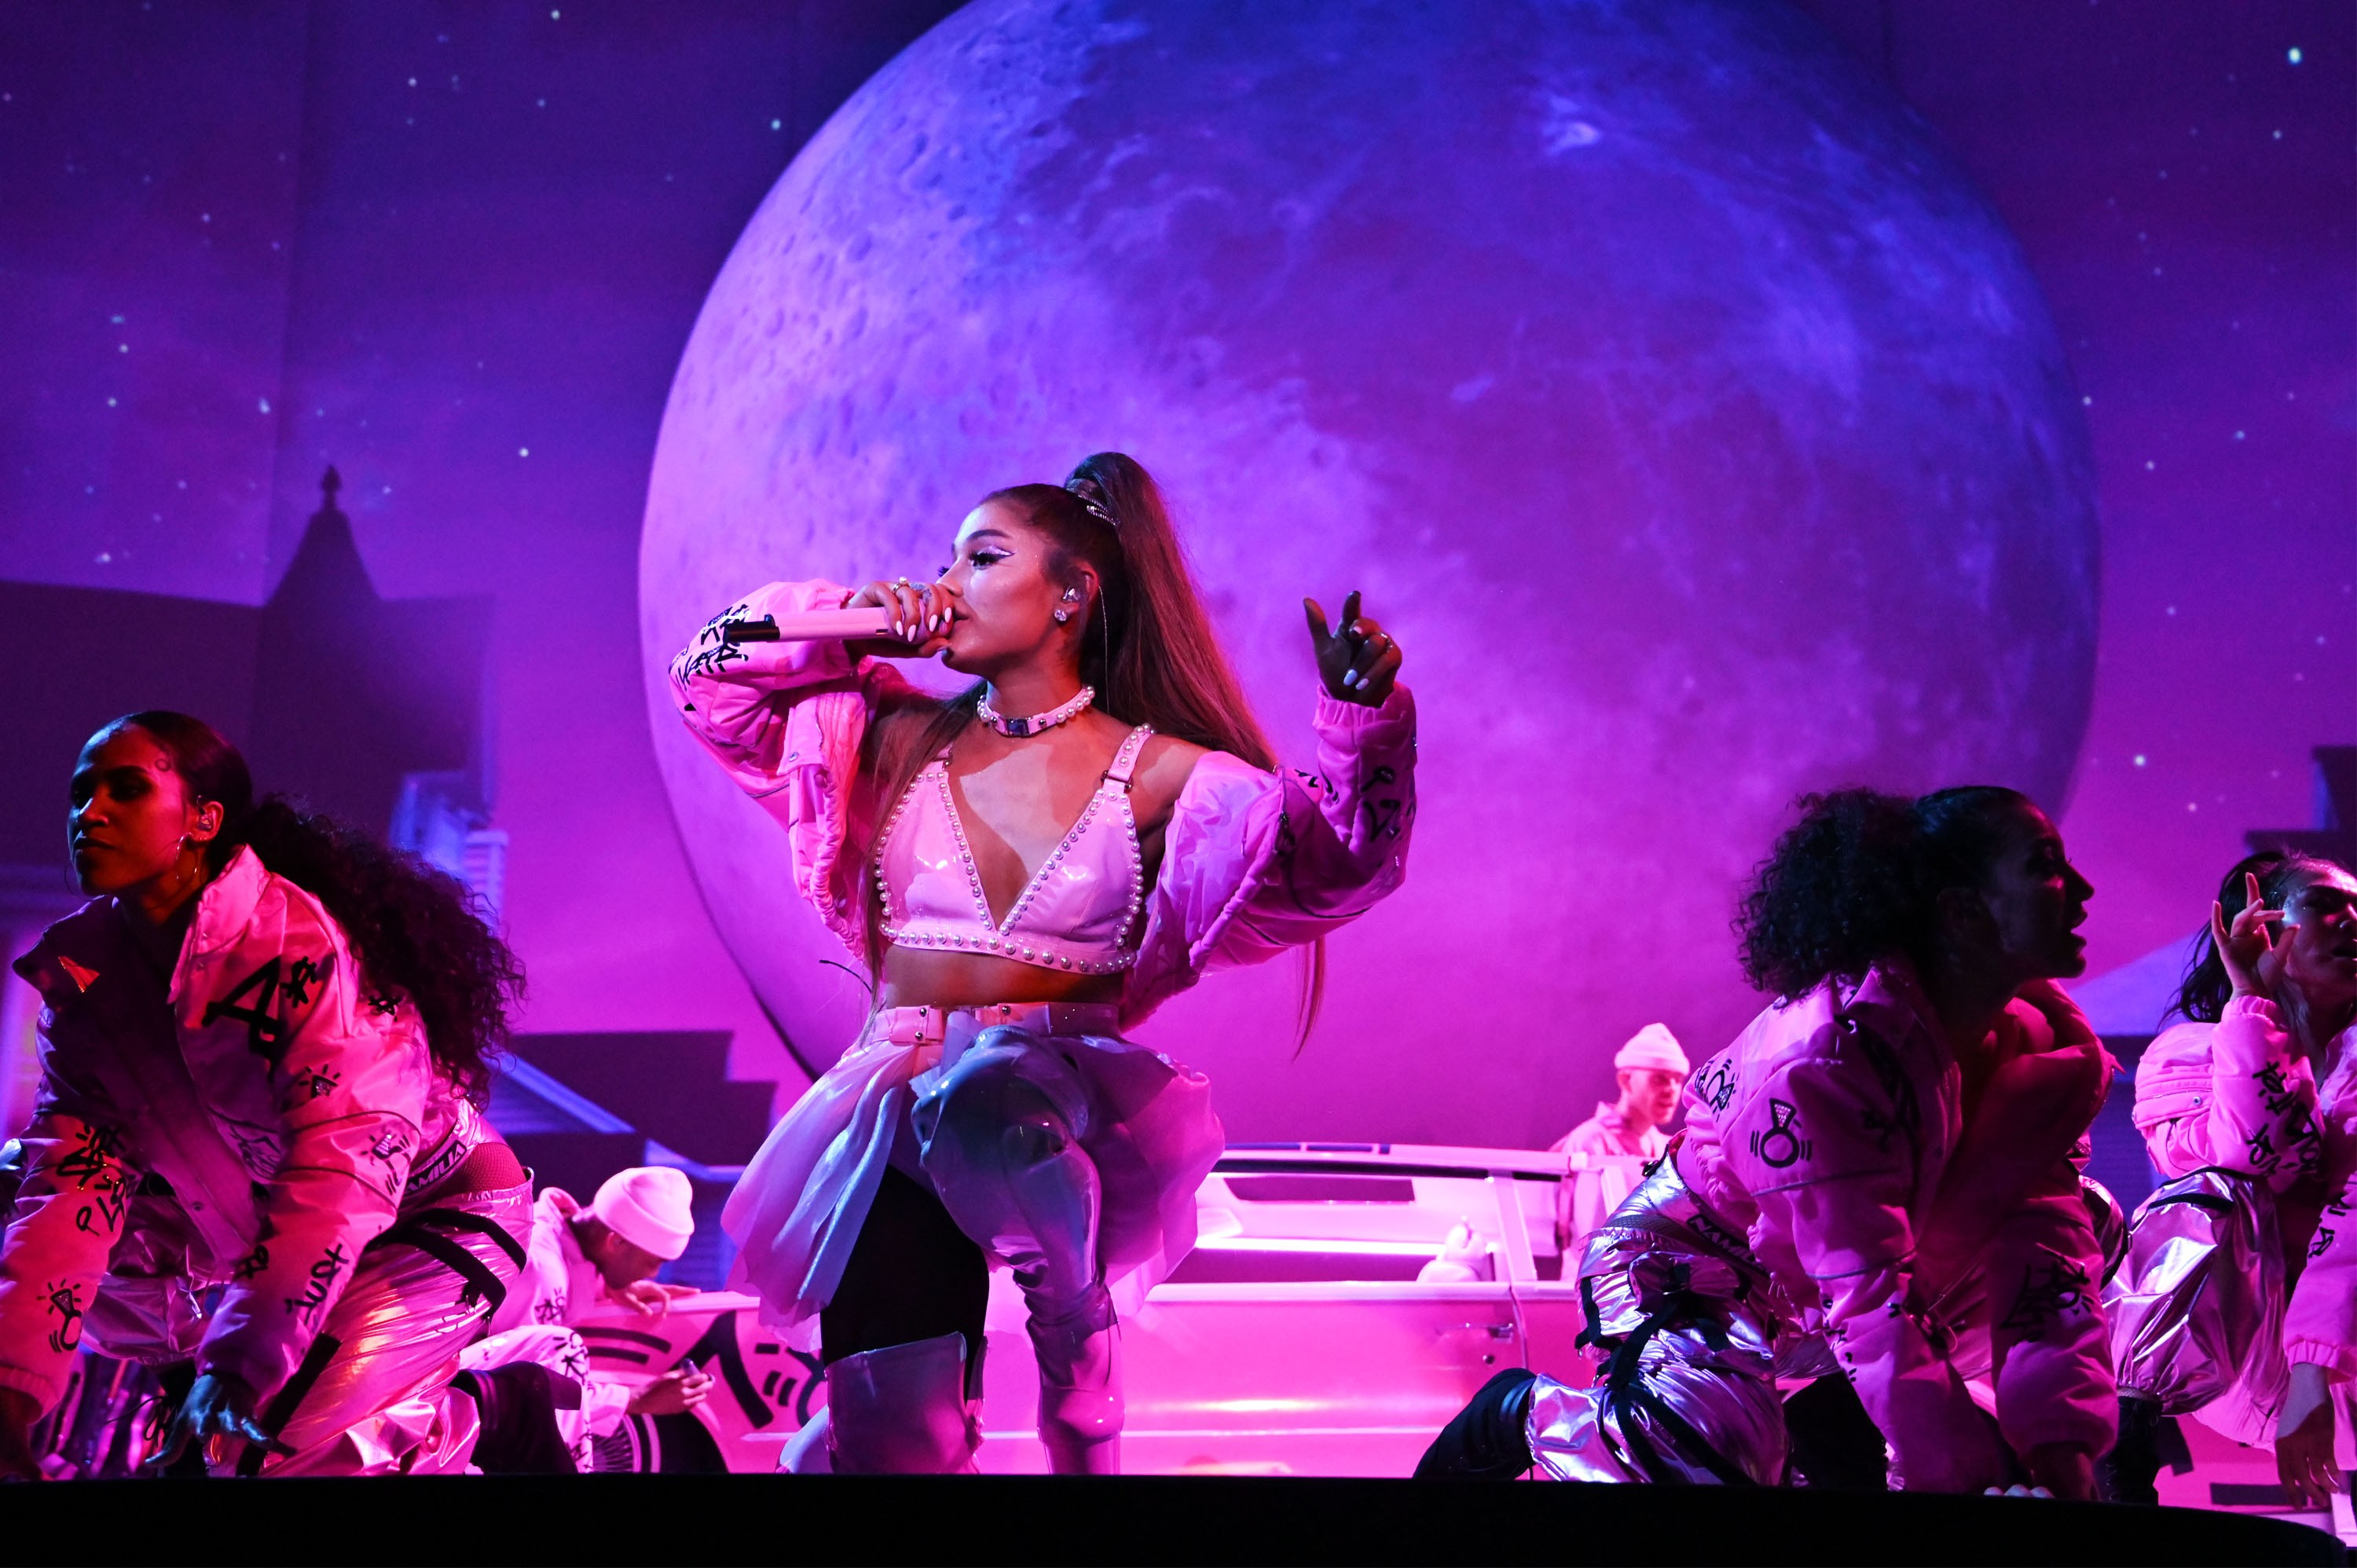 37 Tour It S Her World We Re Just Living In It Ariana Grande Wows San